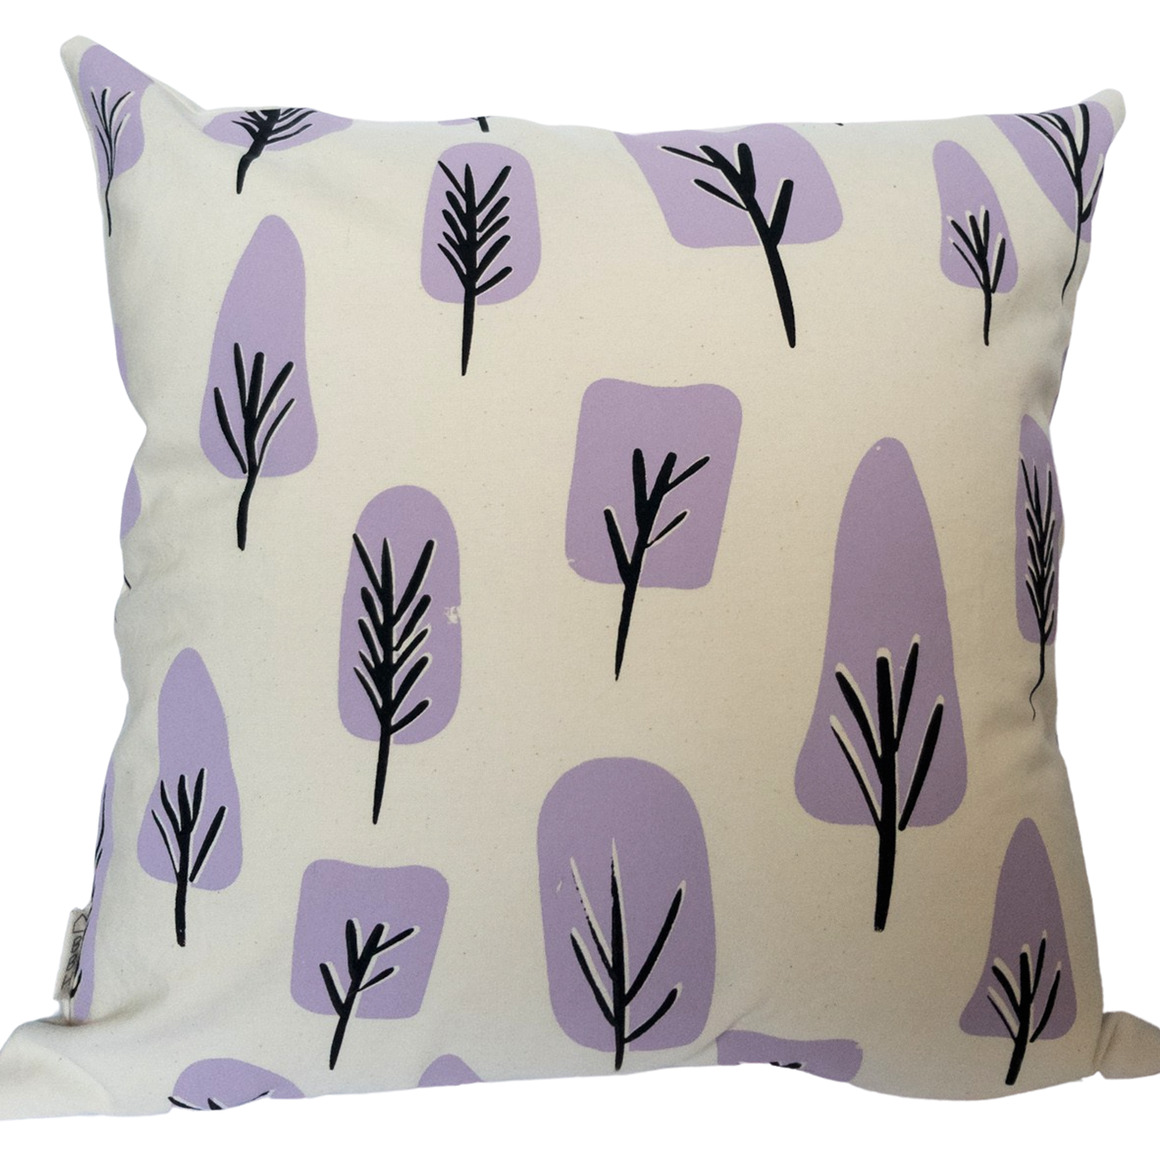 Abstract Tree Screen Printed, Hand Crafted Cushion- 3 colour ways-Cover and Insert | Trada Marketplace